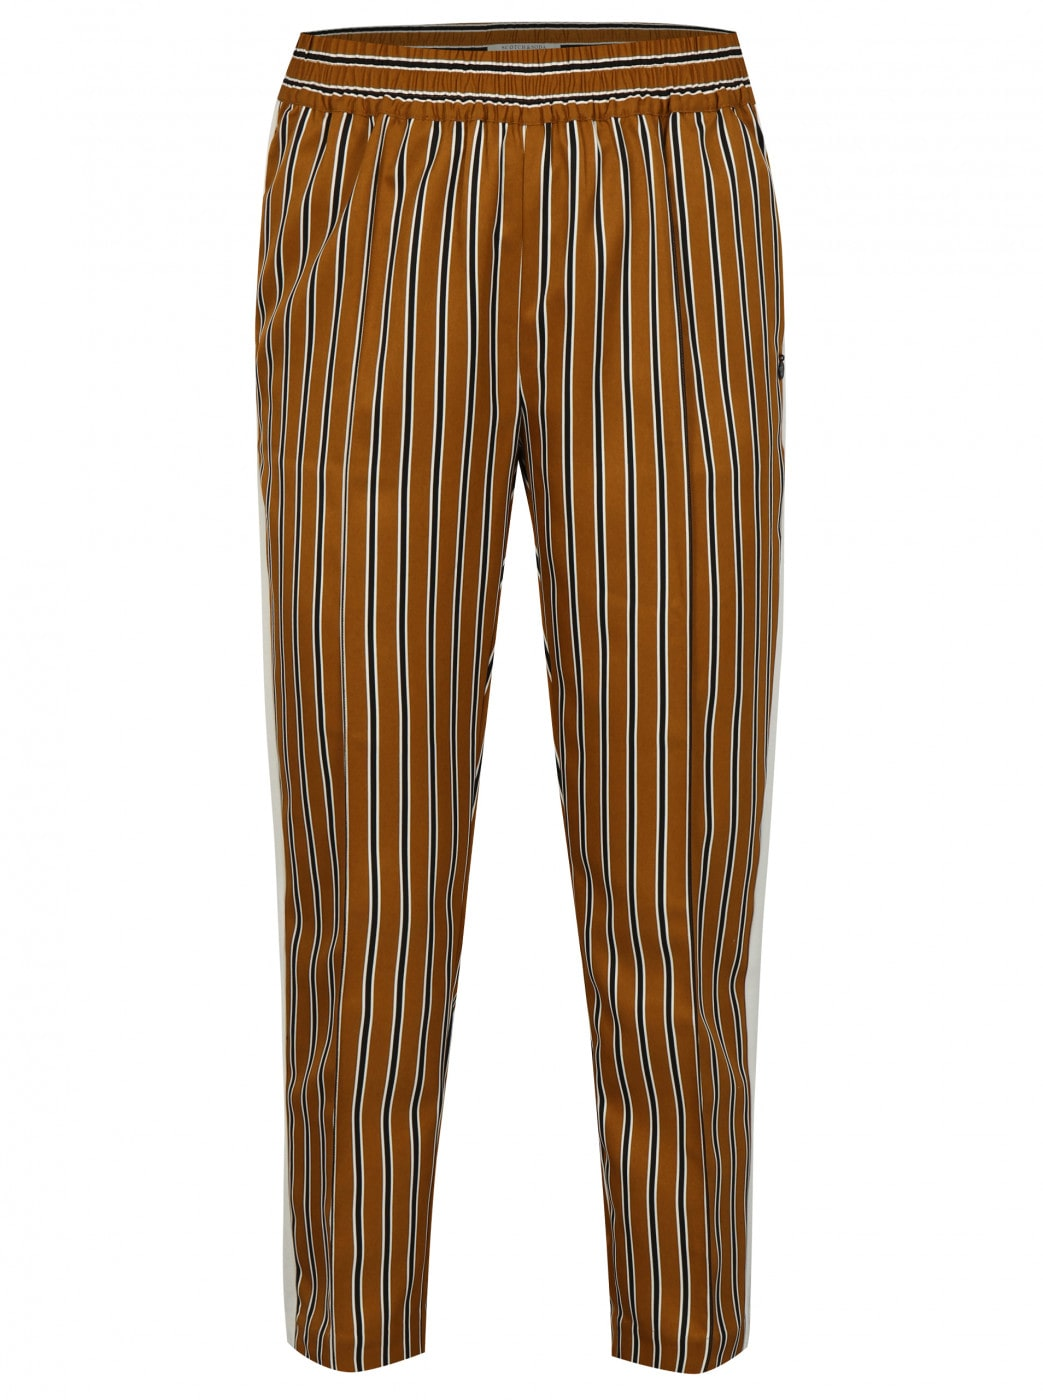 Mustard striped trousers with high waist Scotch & Soda